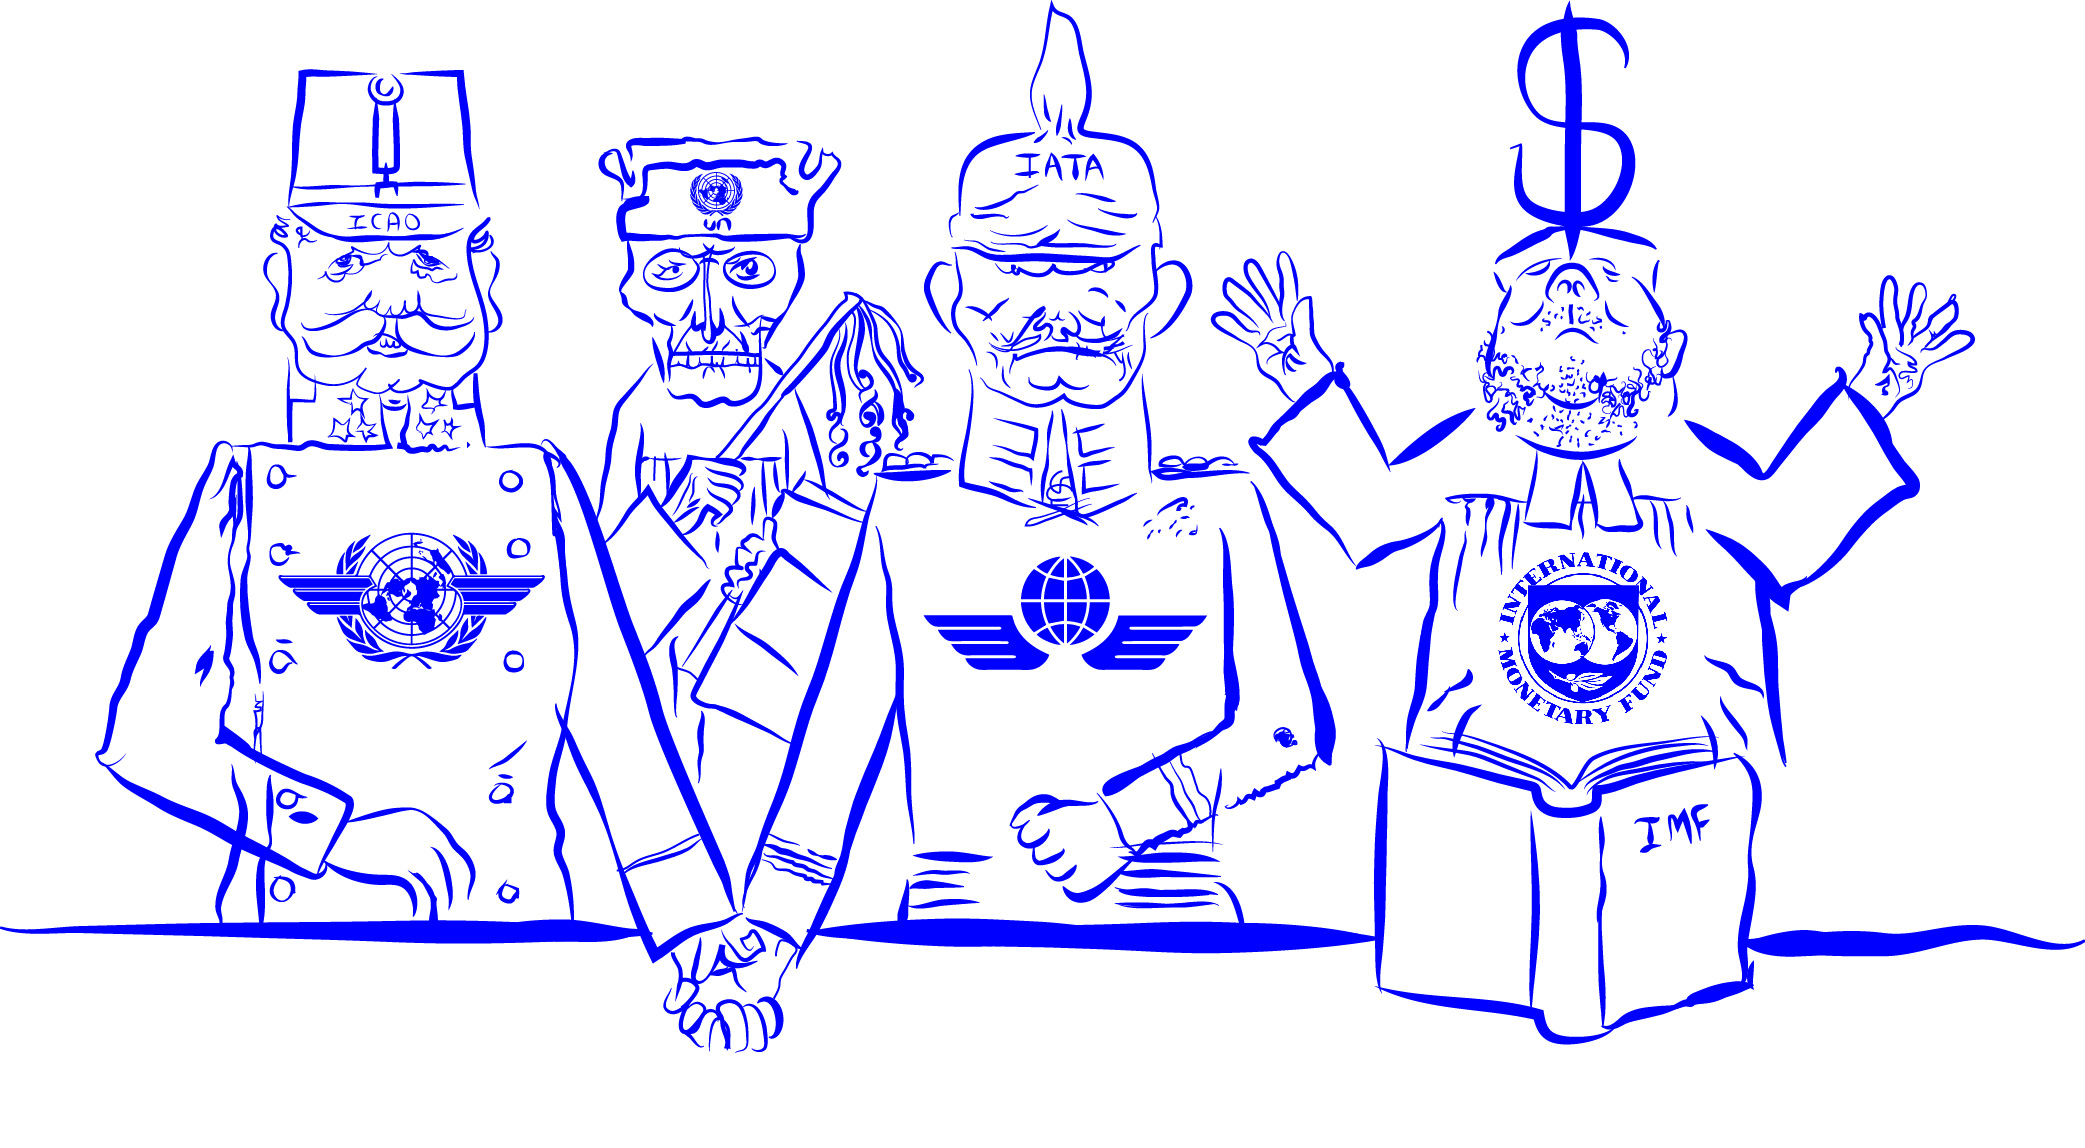 Be subject to the magisterial, a rare ritual gathering of ICAO, UN, IATA, and IMF! (For George Grosz)  (2016)